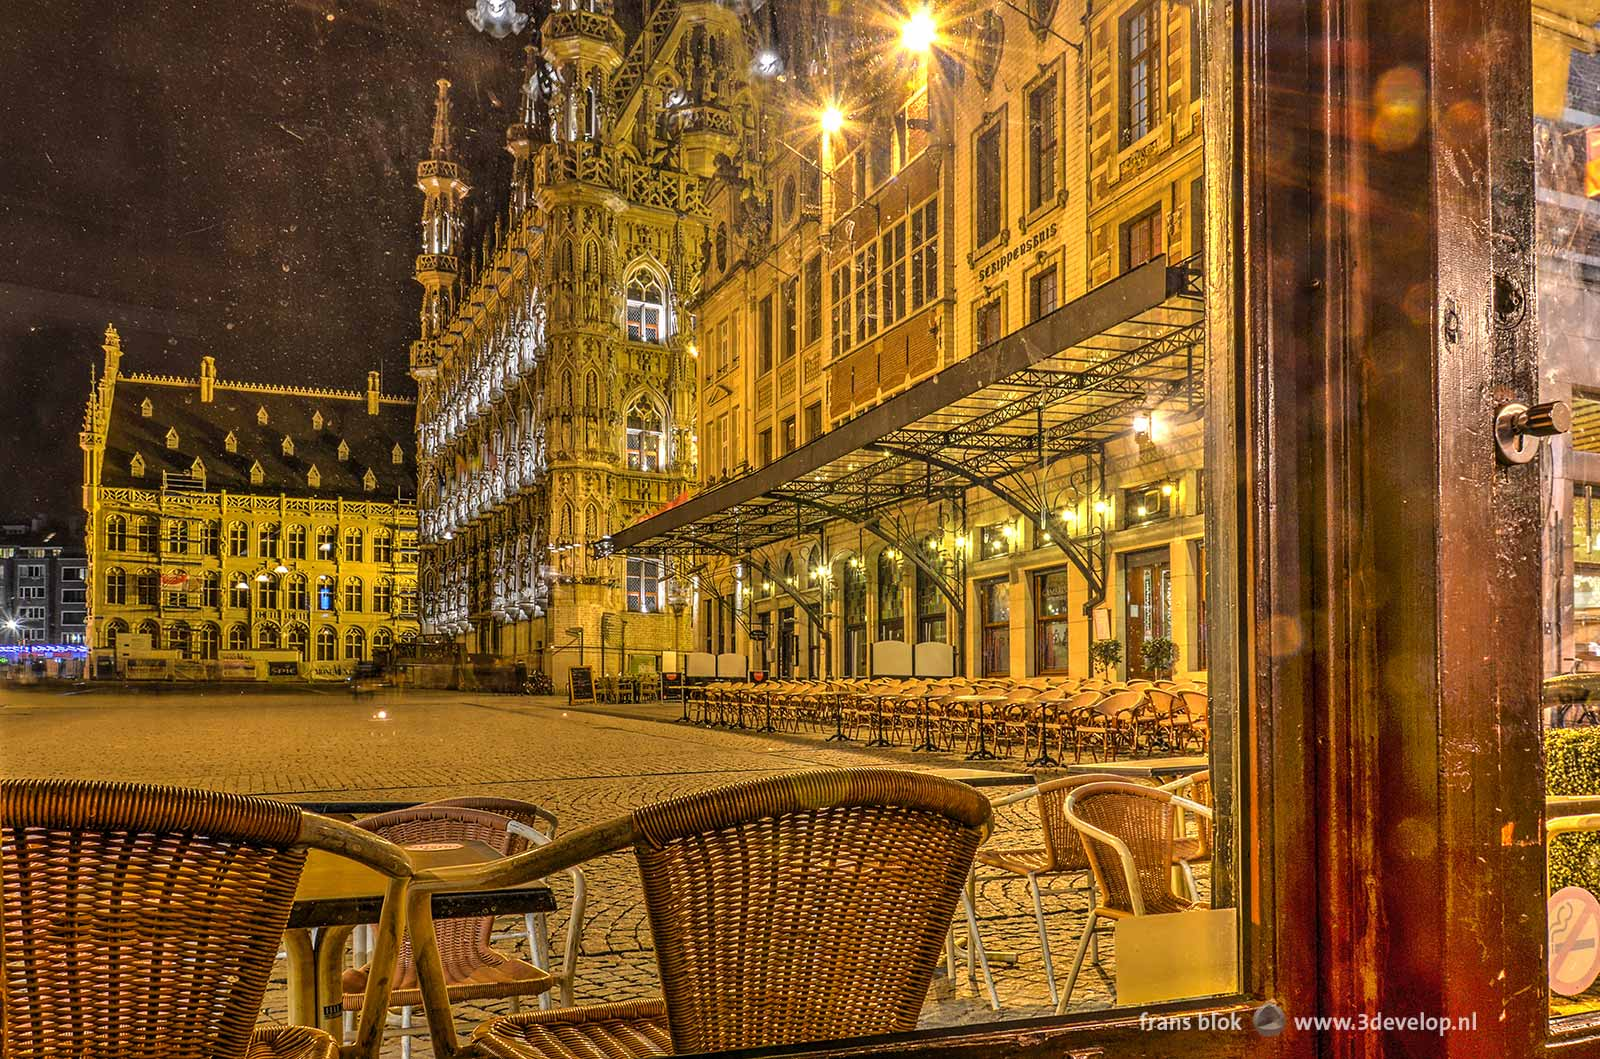 Photo of the City Hall and the Market Square in Leuven made at night through the window of a pub.